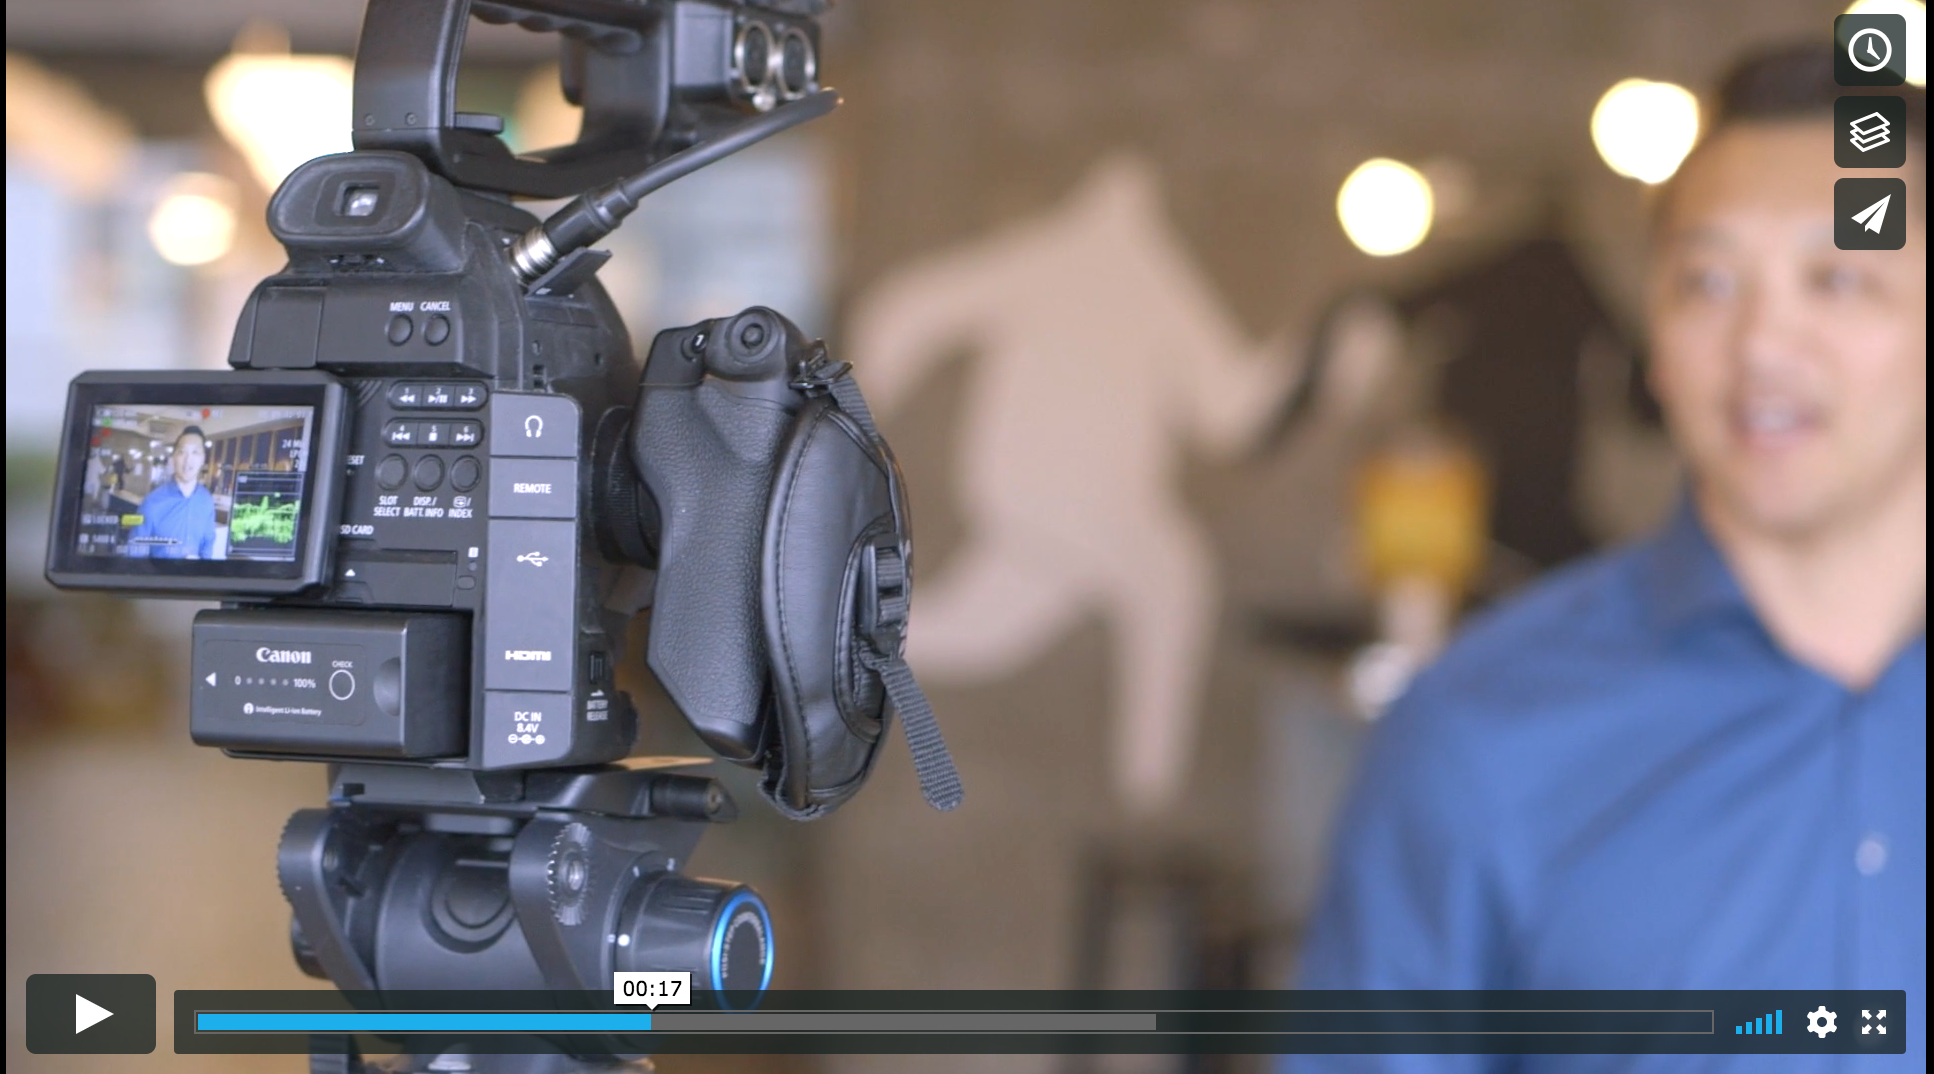 AFFORDABLE AND PROFESSIONAL VIDEO SOLUTIONS FOR REAL ESTATE